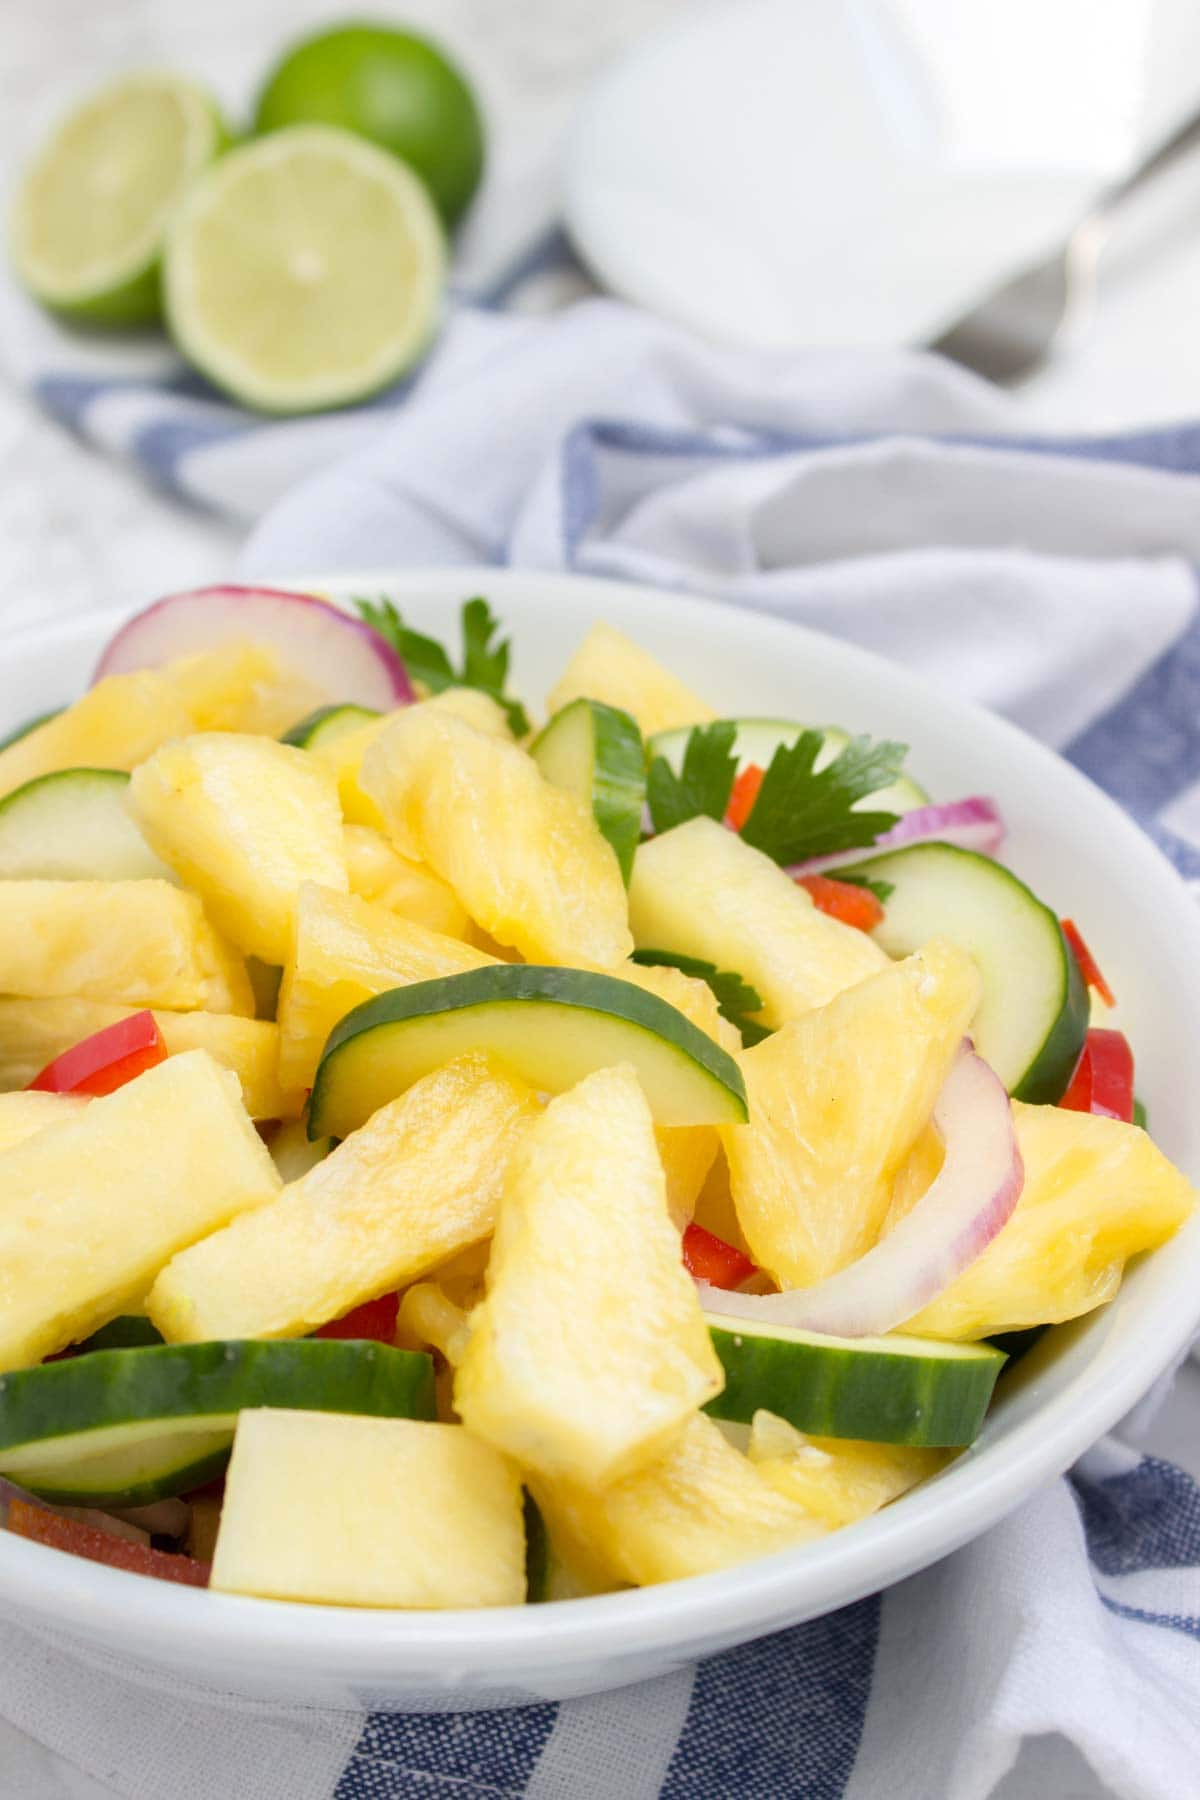 Pineapple and cucumber salad for fruit salad ideas for 4th of July